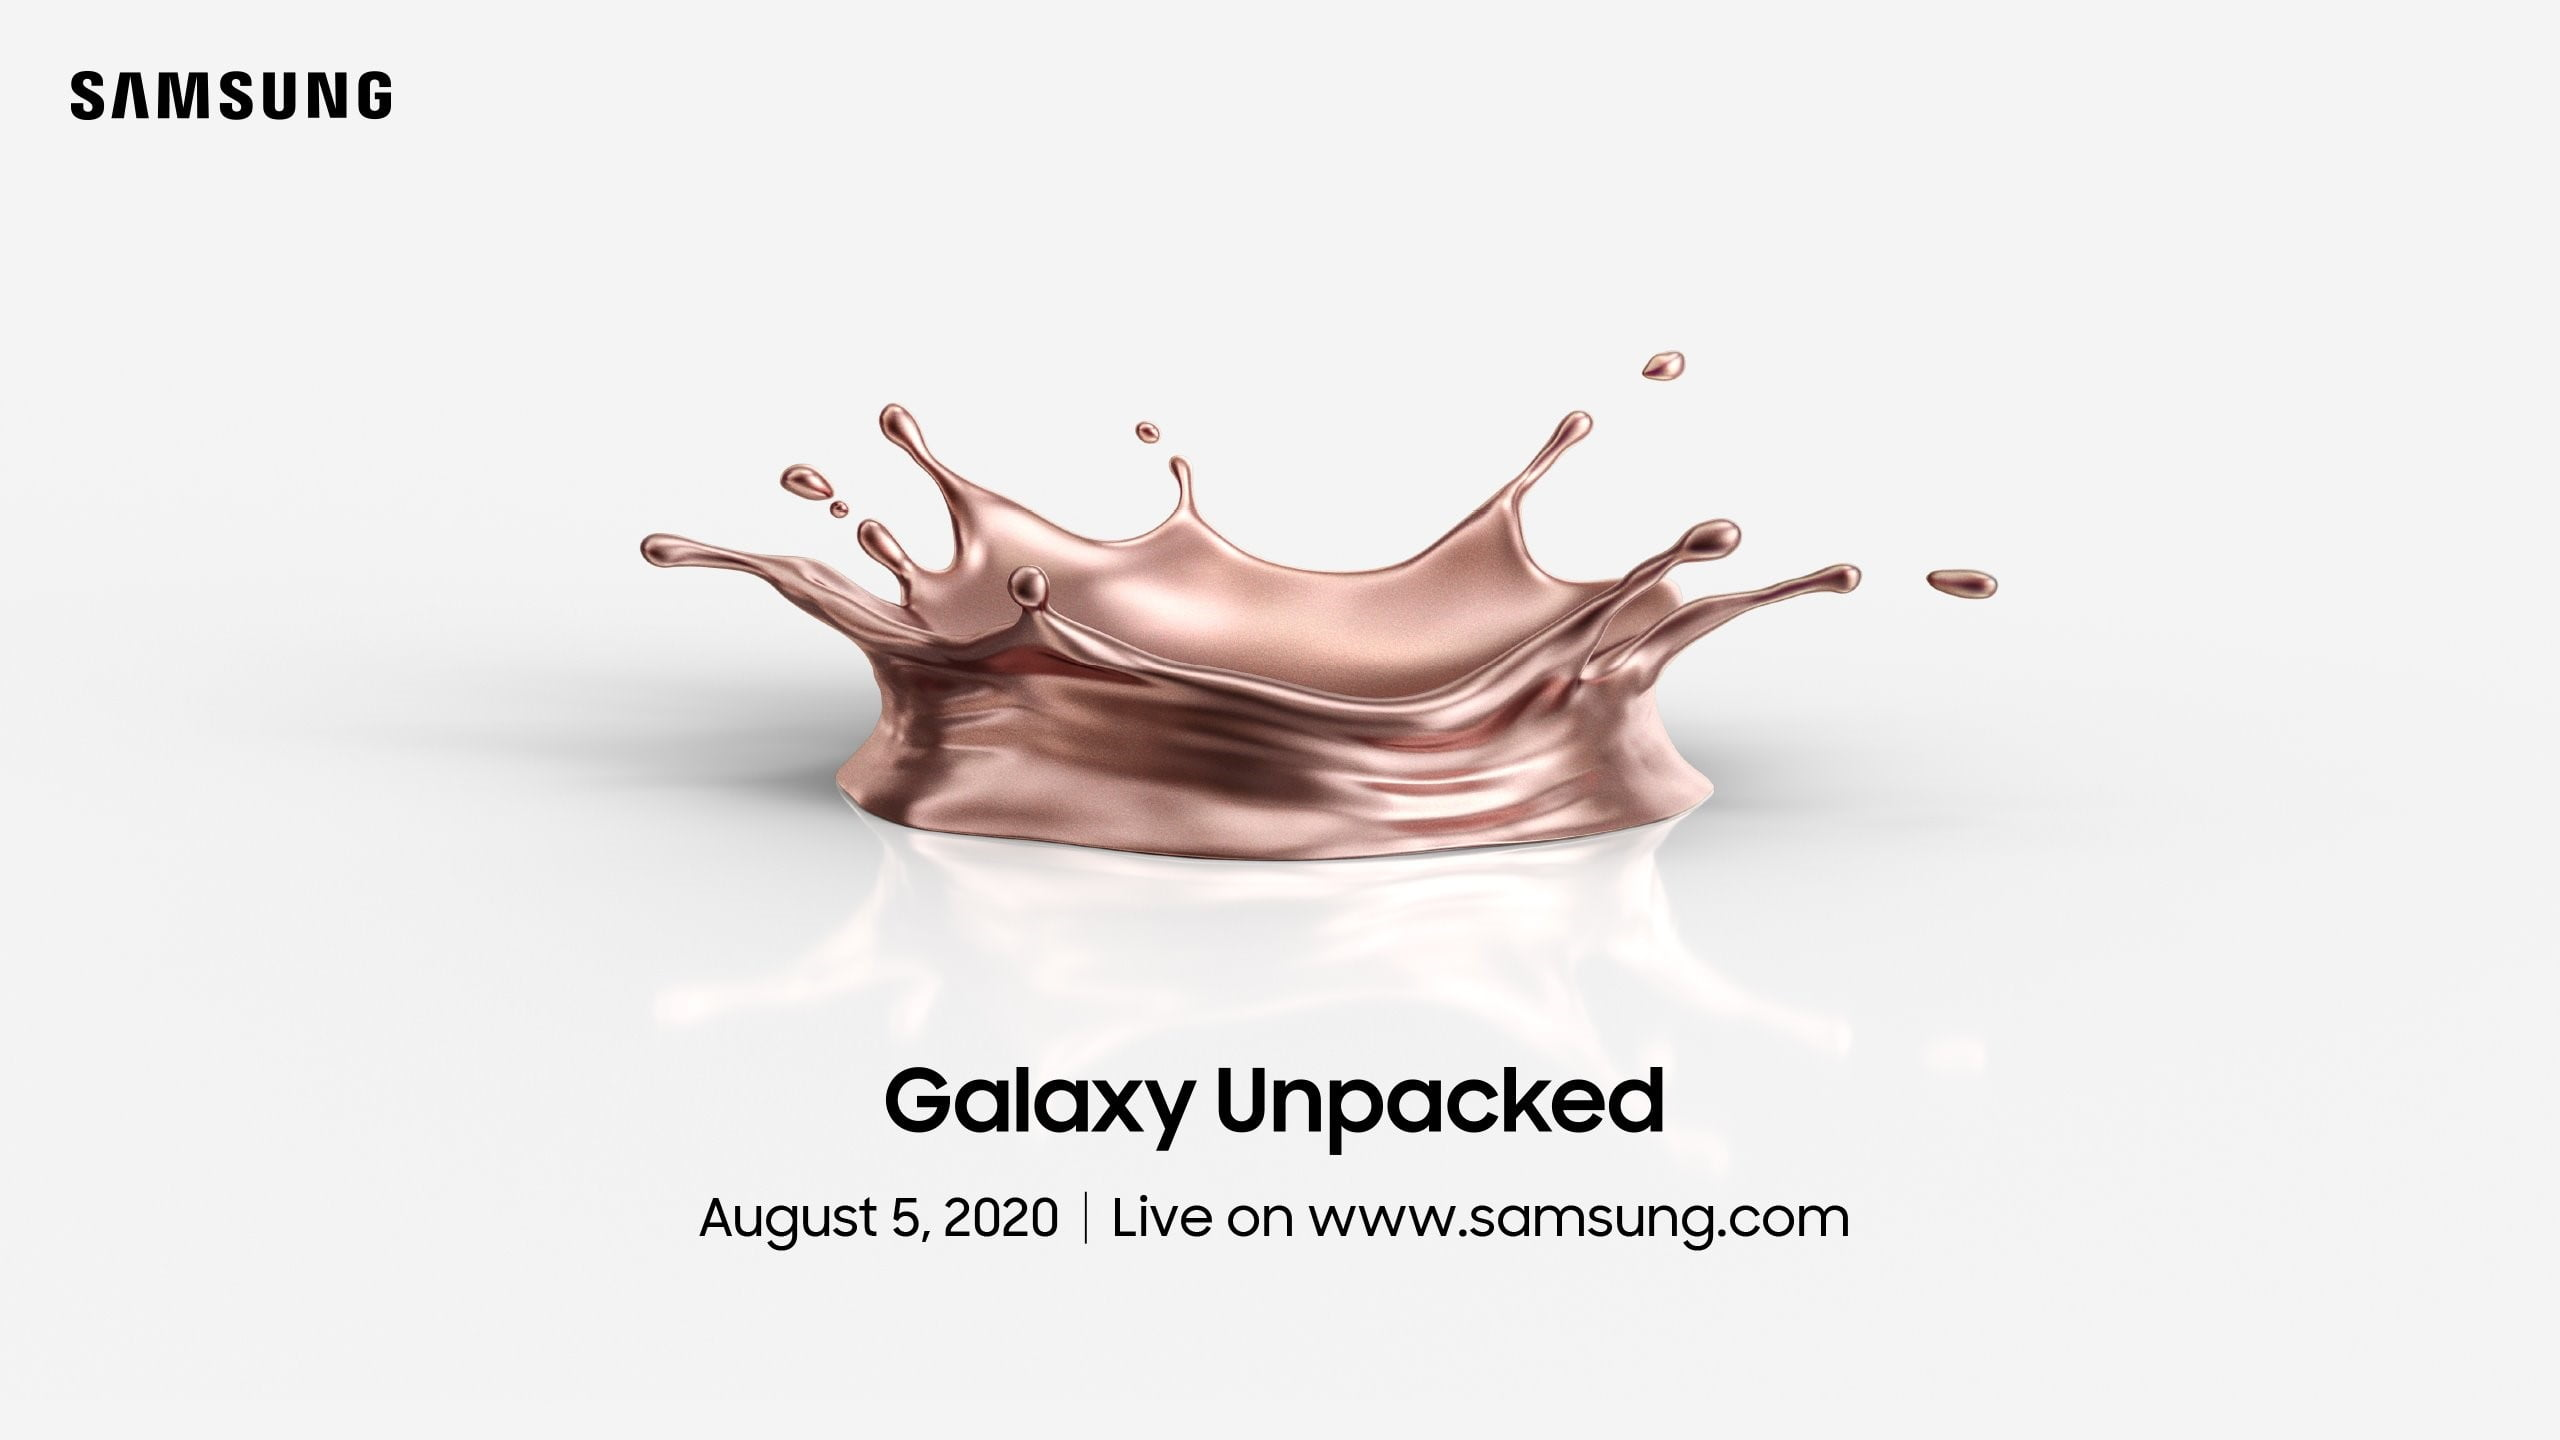 Samsung confirms Galaxy Note event on August 5th